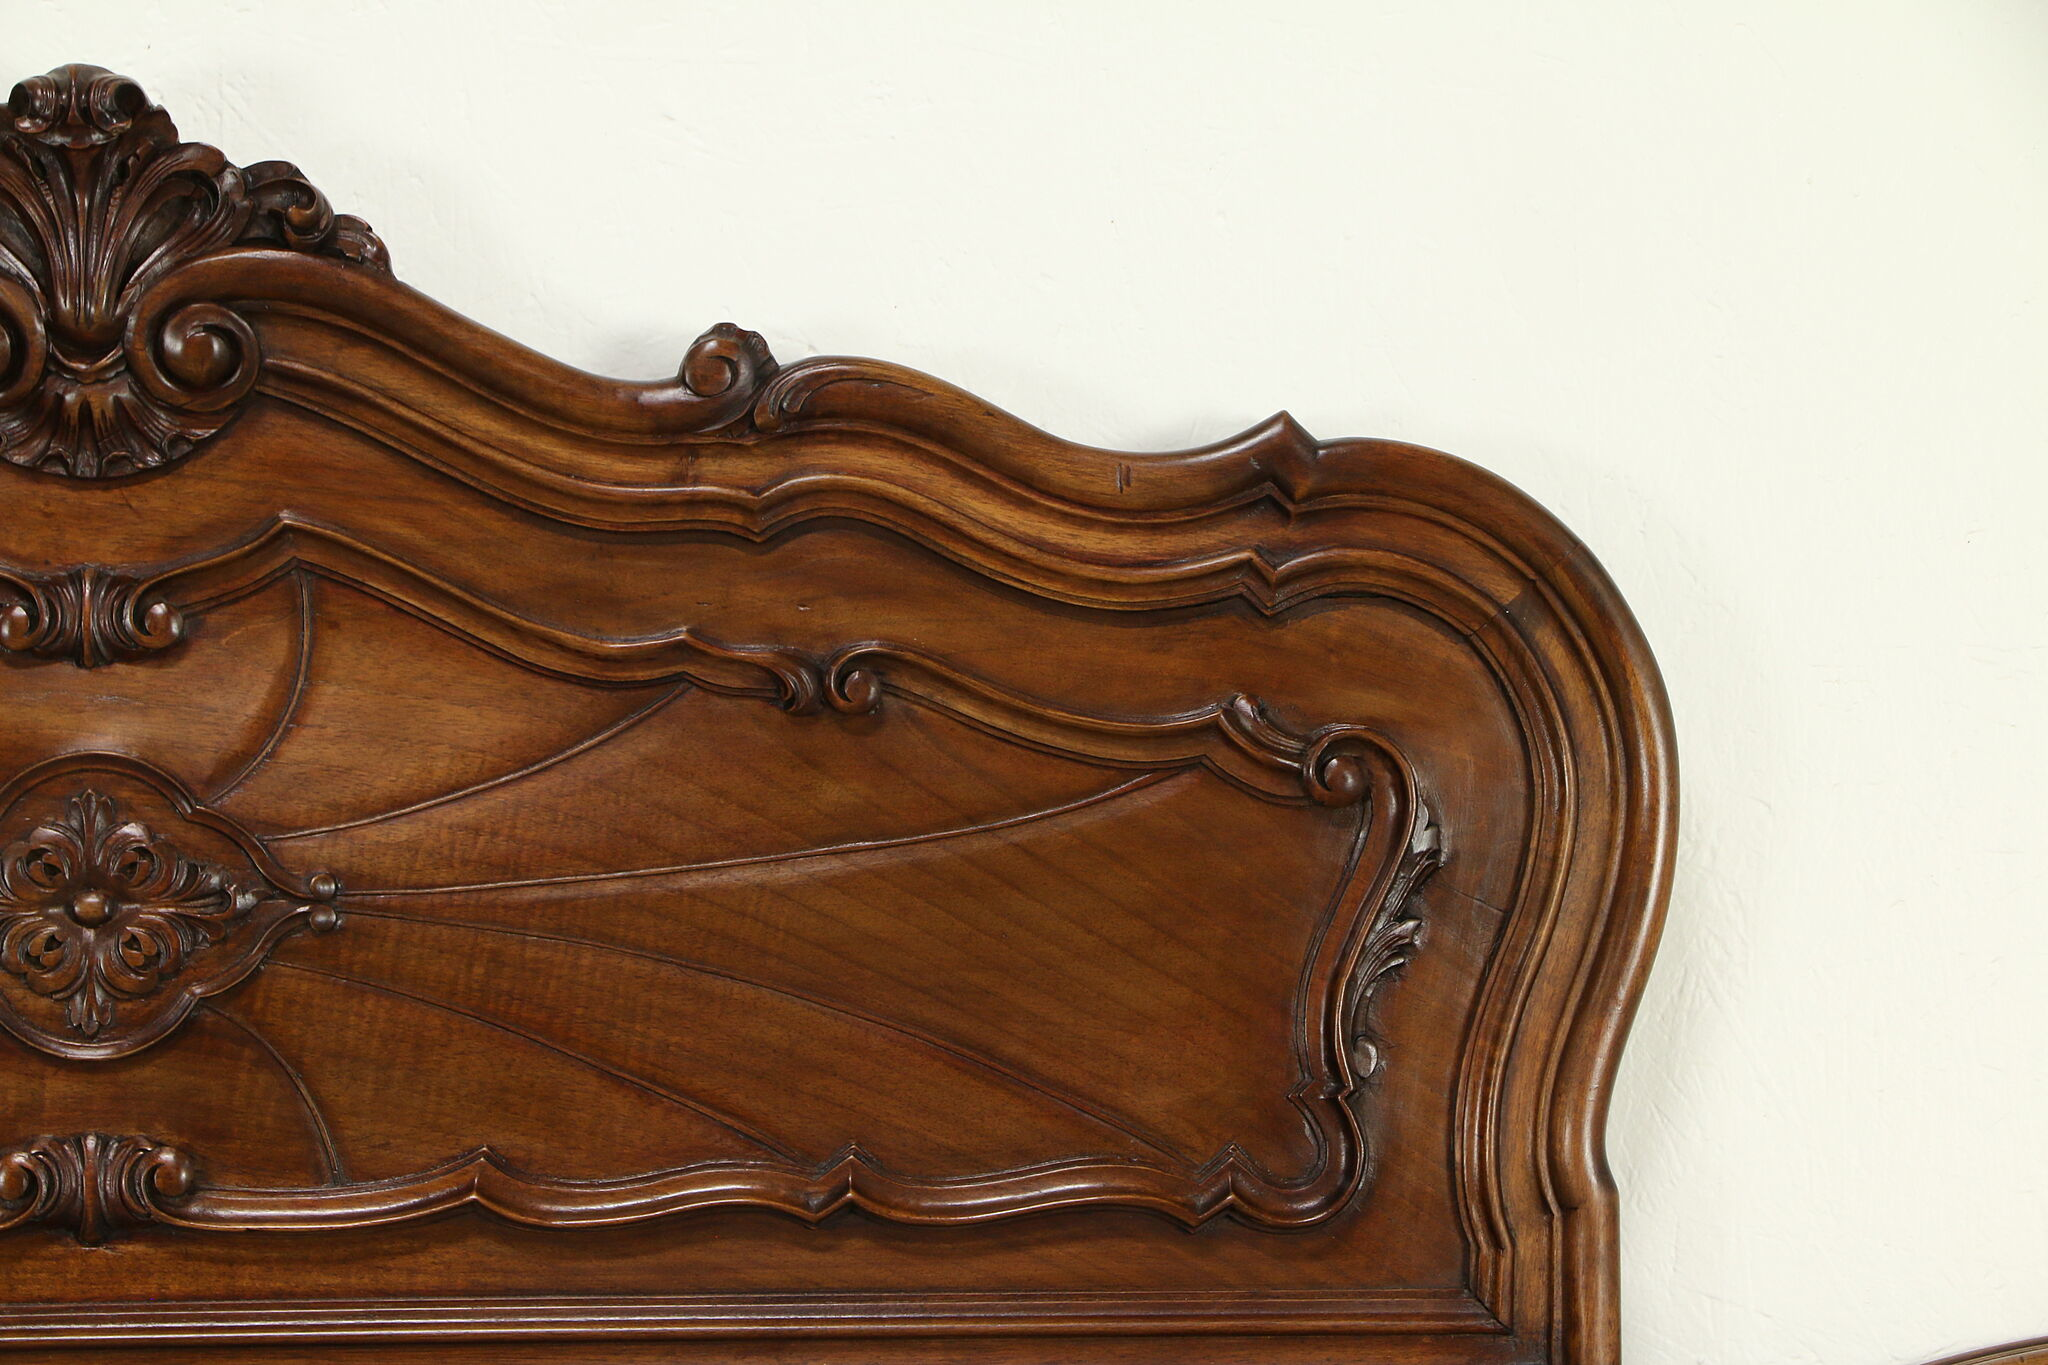 Sold Italian Antique Carved Walnut King Size Bed Headboard 31627 Harp Gallery Antiques Furniture